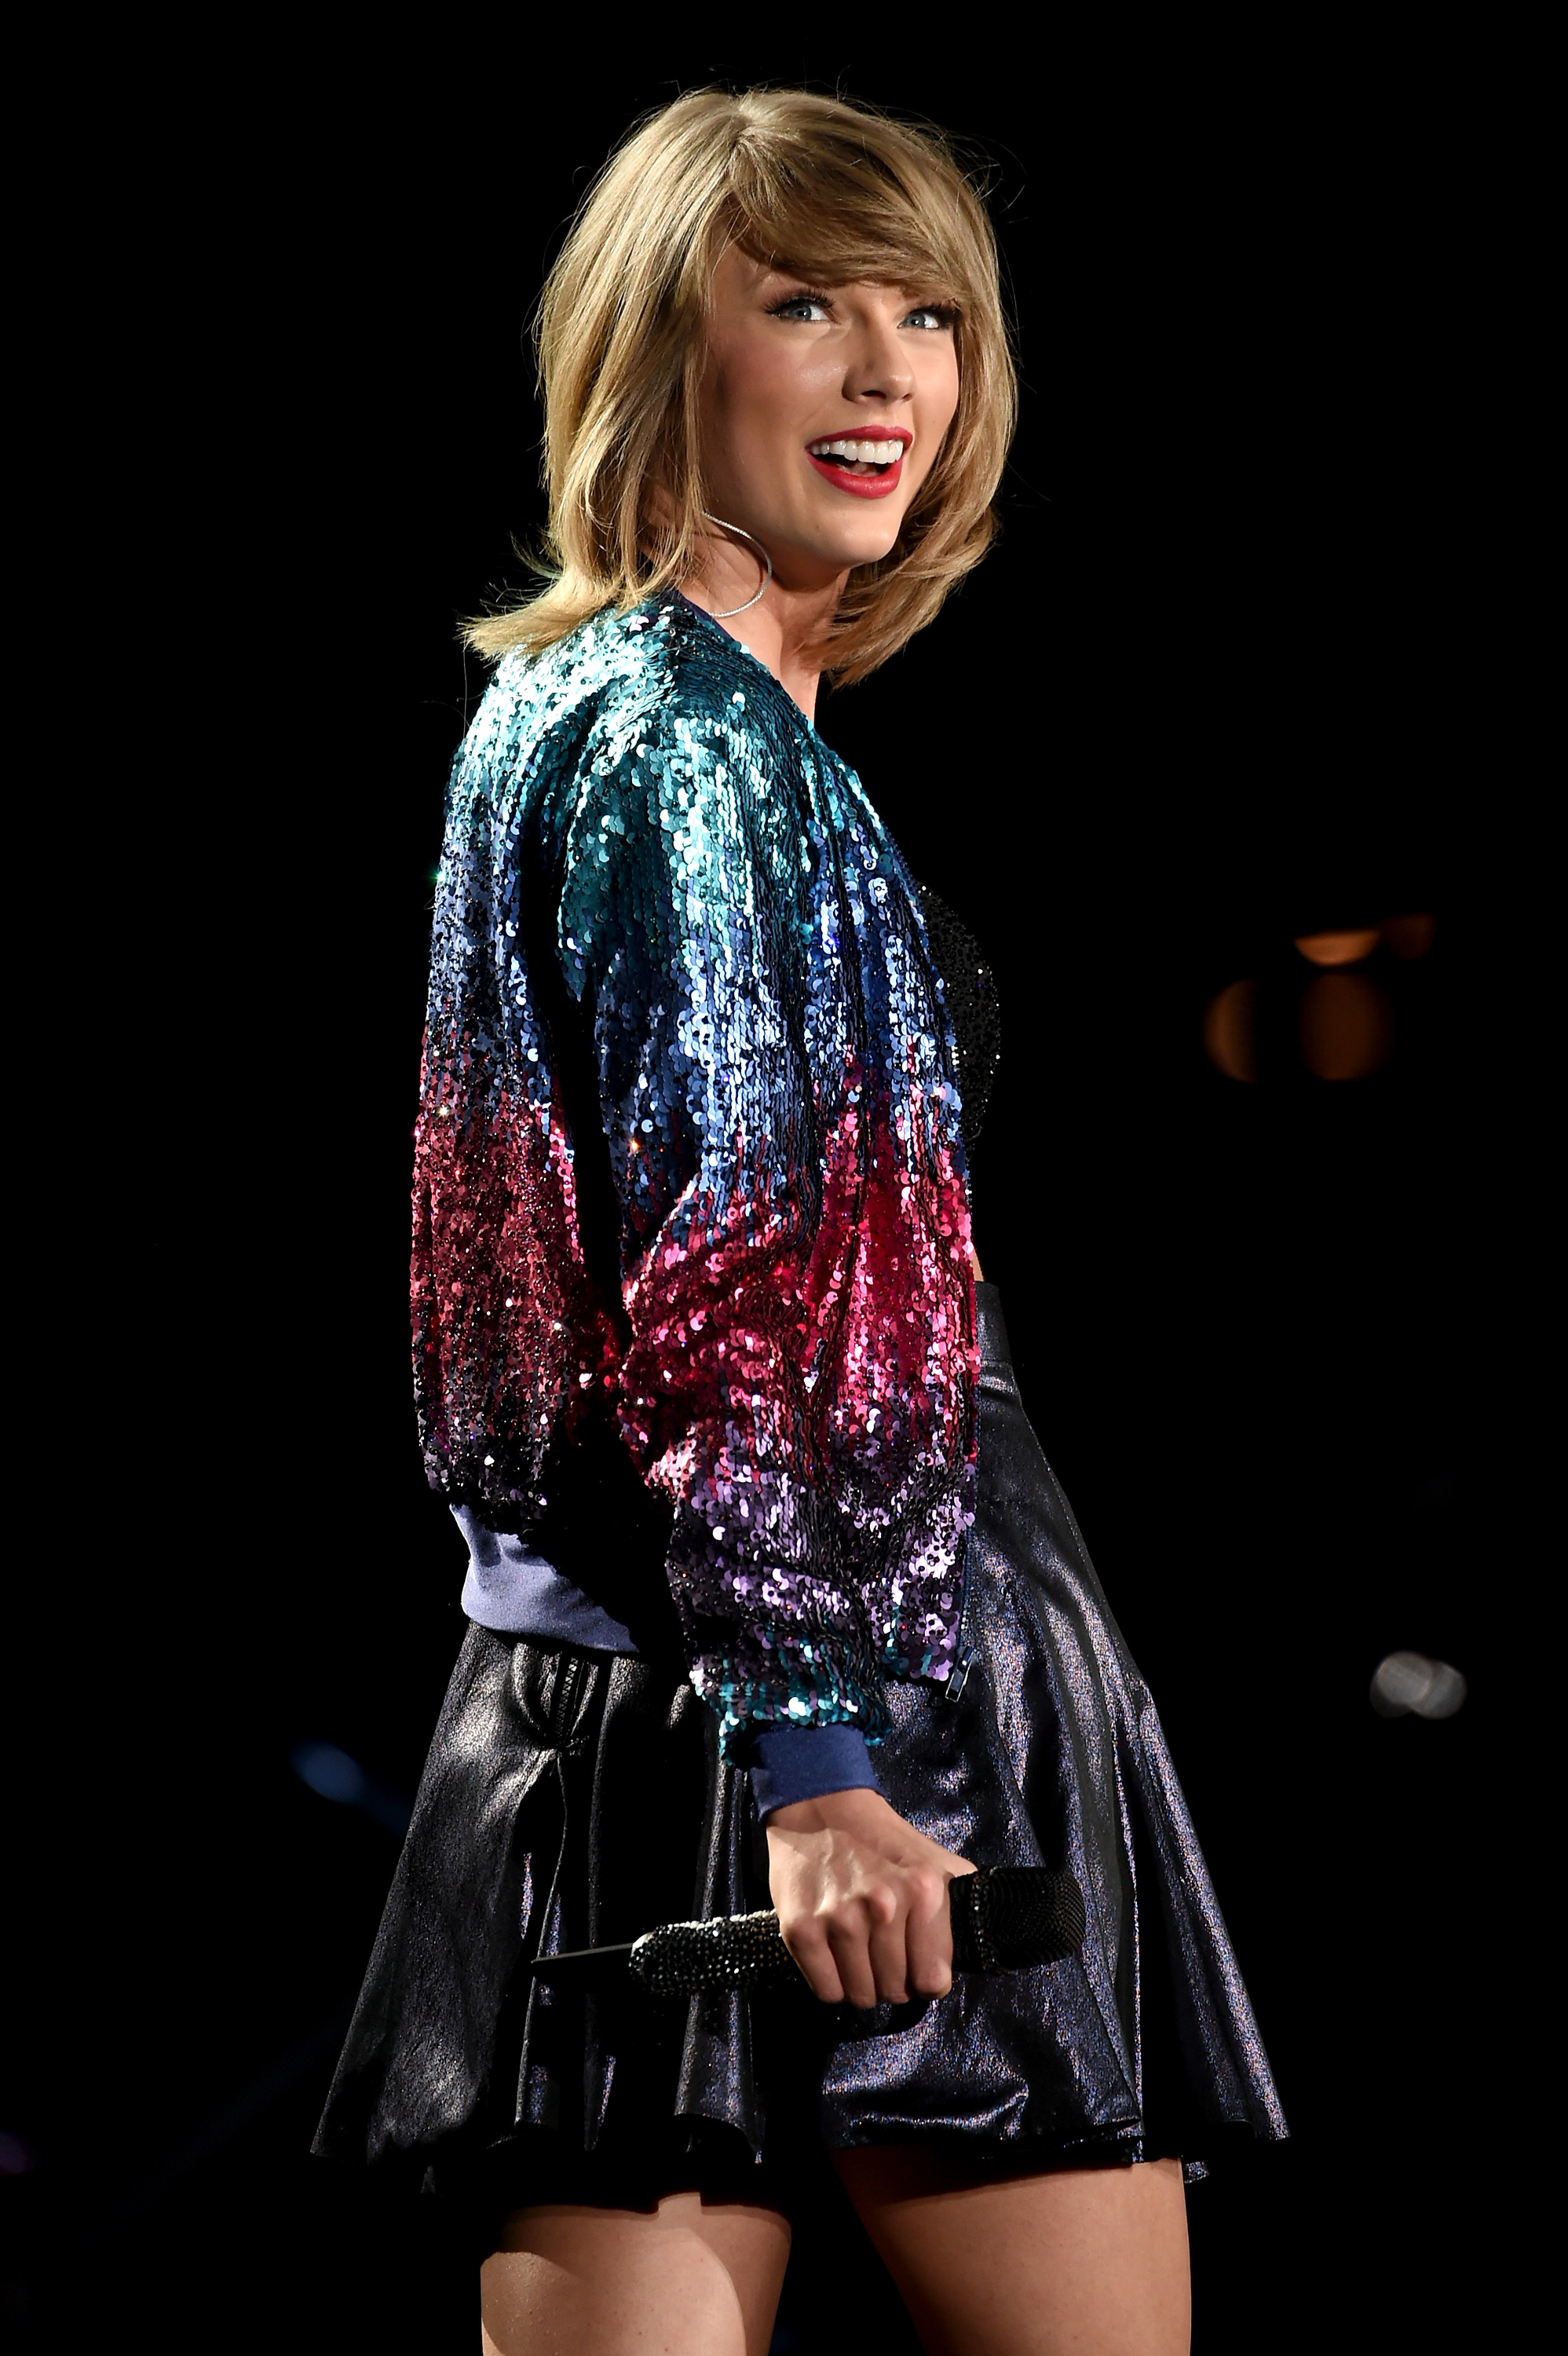 Taylor Swift - Racked - photo#20